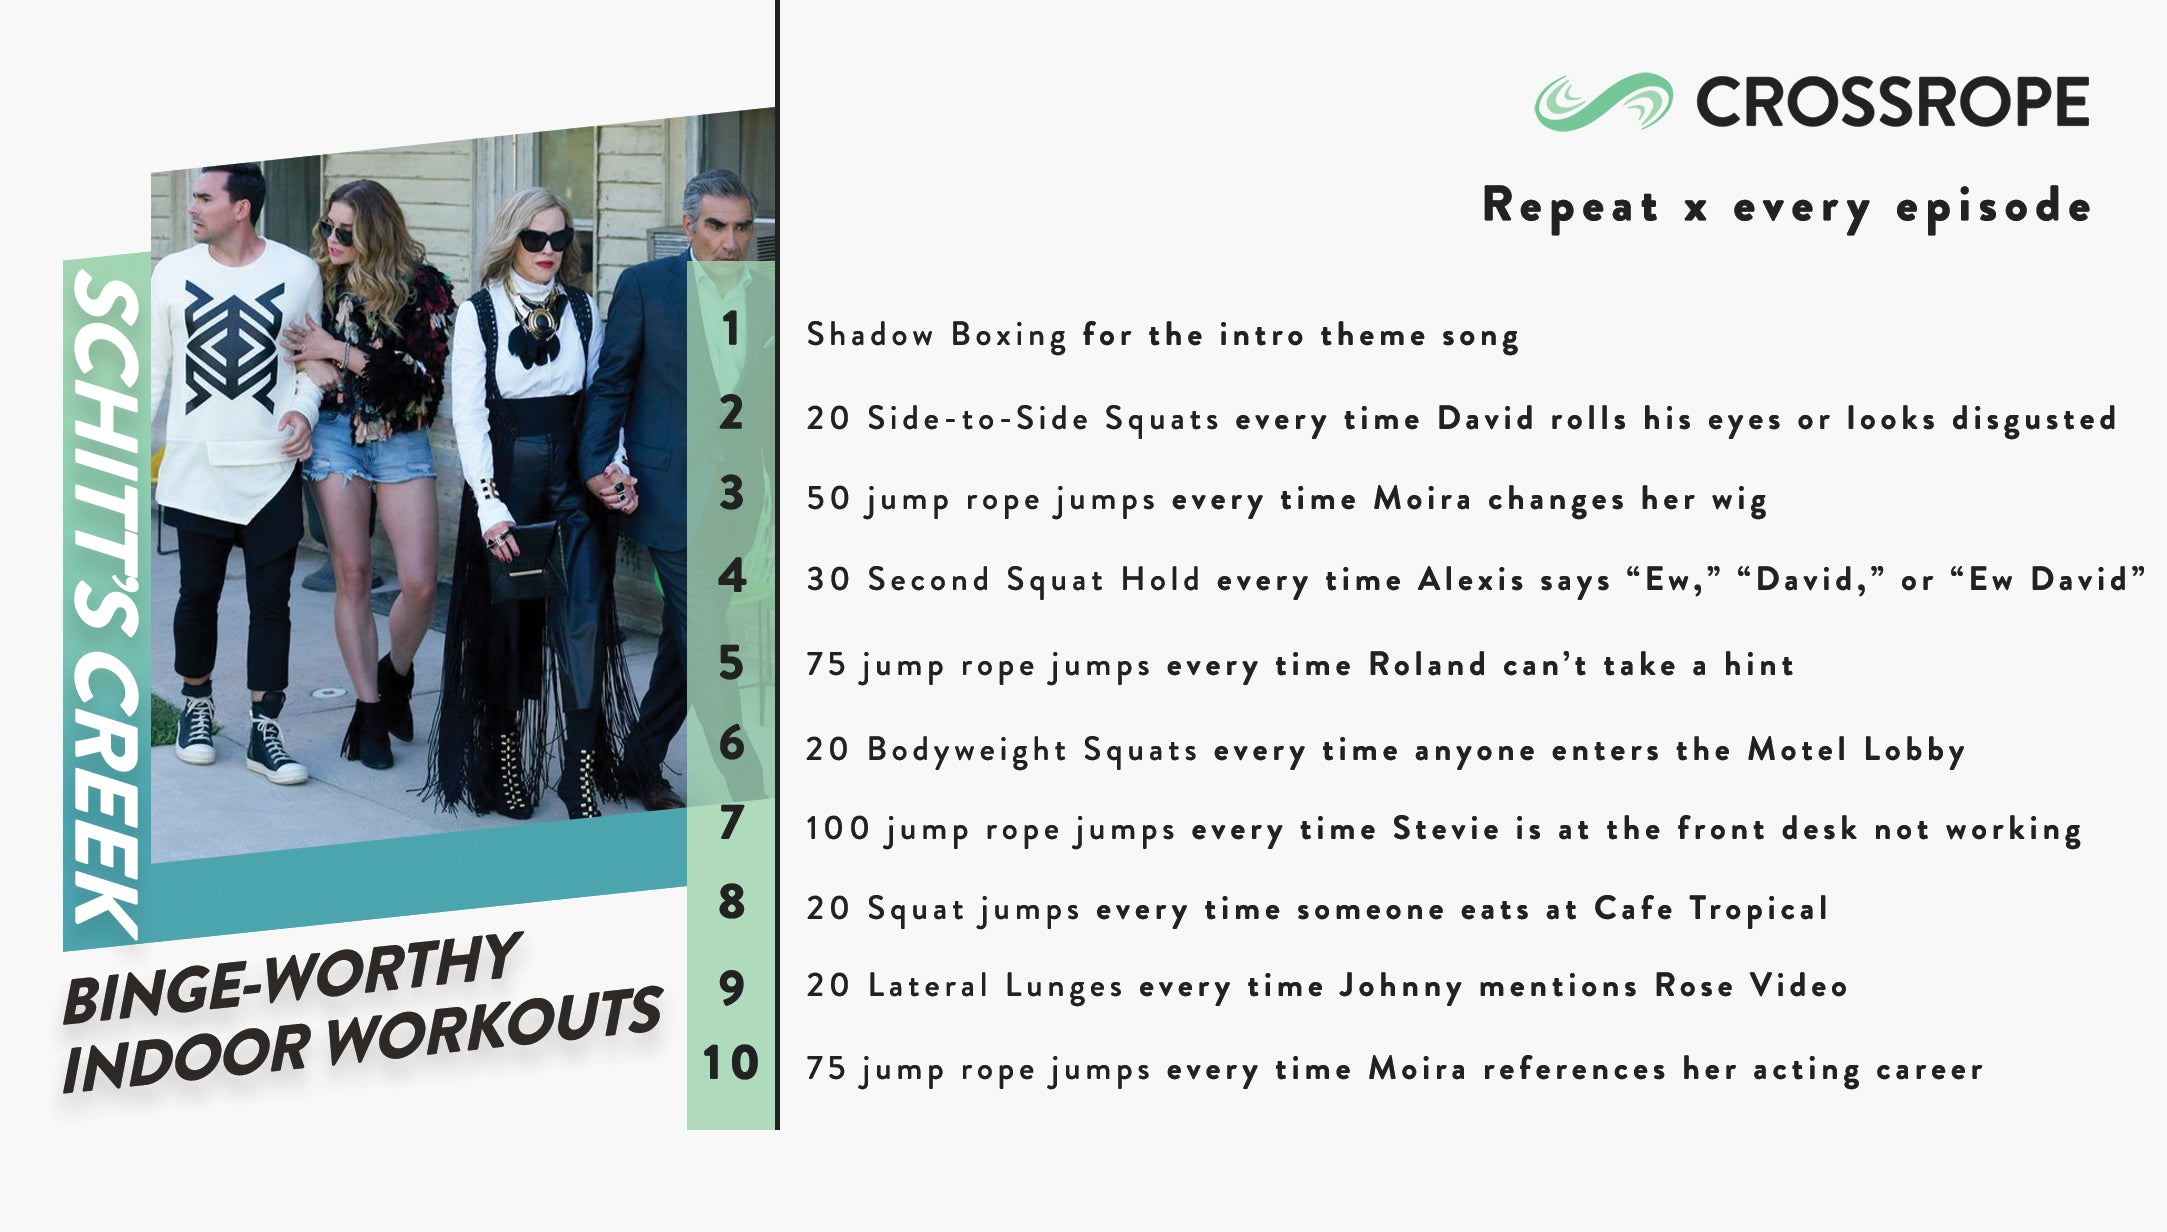 infographic image describing fun indoor workouts you can do while watching the TV show Schitt's Creek